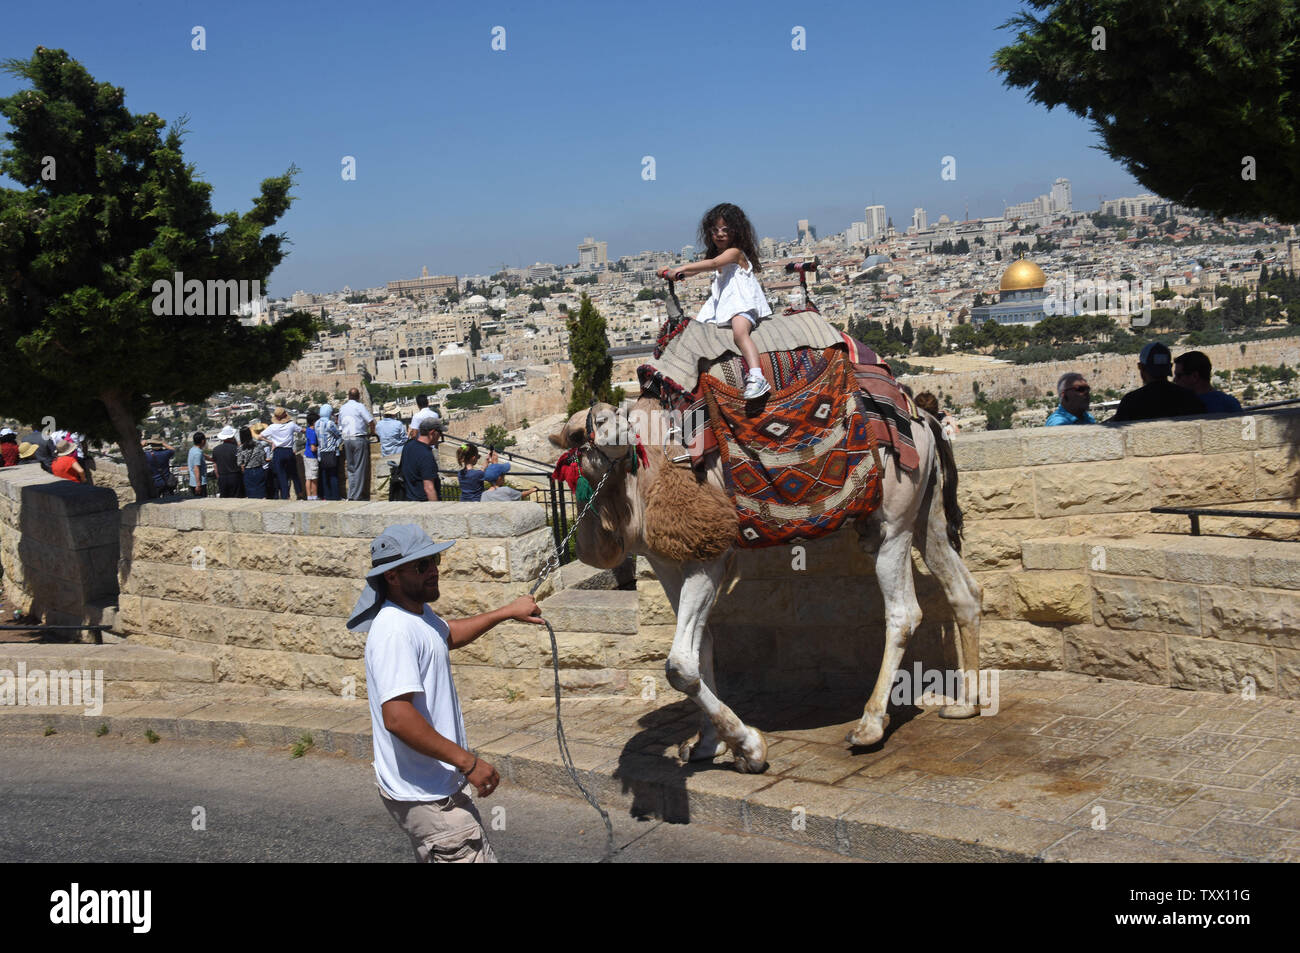 A Palestinian girl rides a donkey on the Mt. of Olives, overlooking the Old City of Jerusalem, June 25, 2018. Prince William will  receive a briefing on the history and geography of Jerusalem's Old City from the Mt. of Olives this week, on the first state visit to the Holy Land by a member of the royal family. Israeli ministers slammed Prince William's official itinerary because it describes the Old City of Jerusalem as being in Occupied Palestinian Territories.  Photo by Debbie Hill/UPI - Stock Image